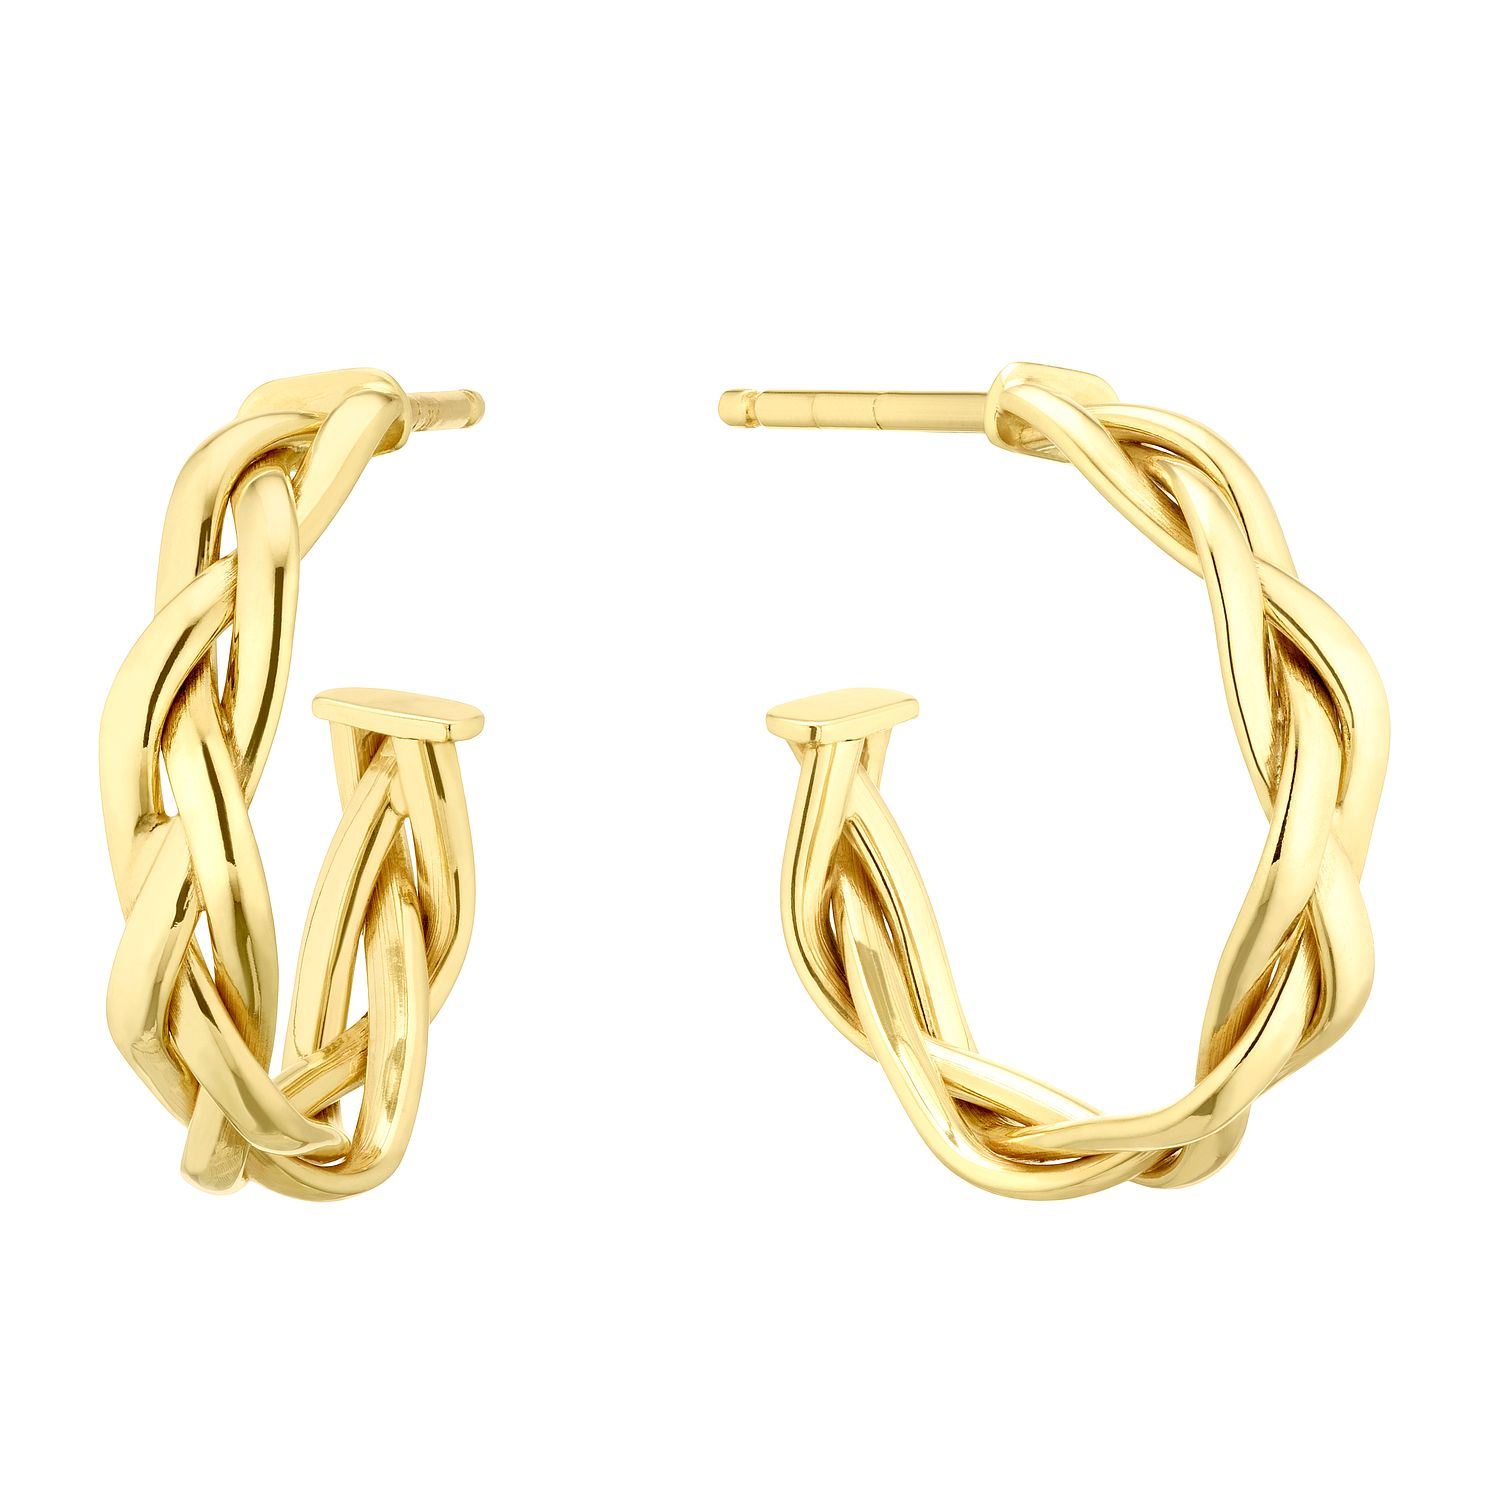 9ct Yellow Gold Braided Half Hoop Earrings - Product number 5256801